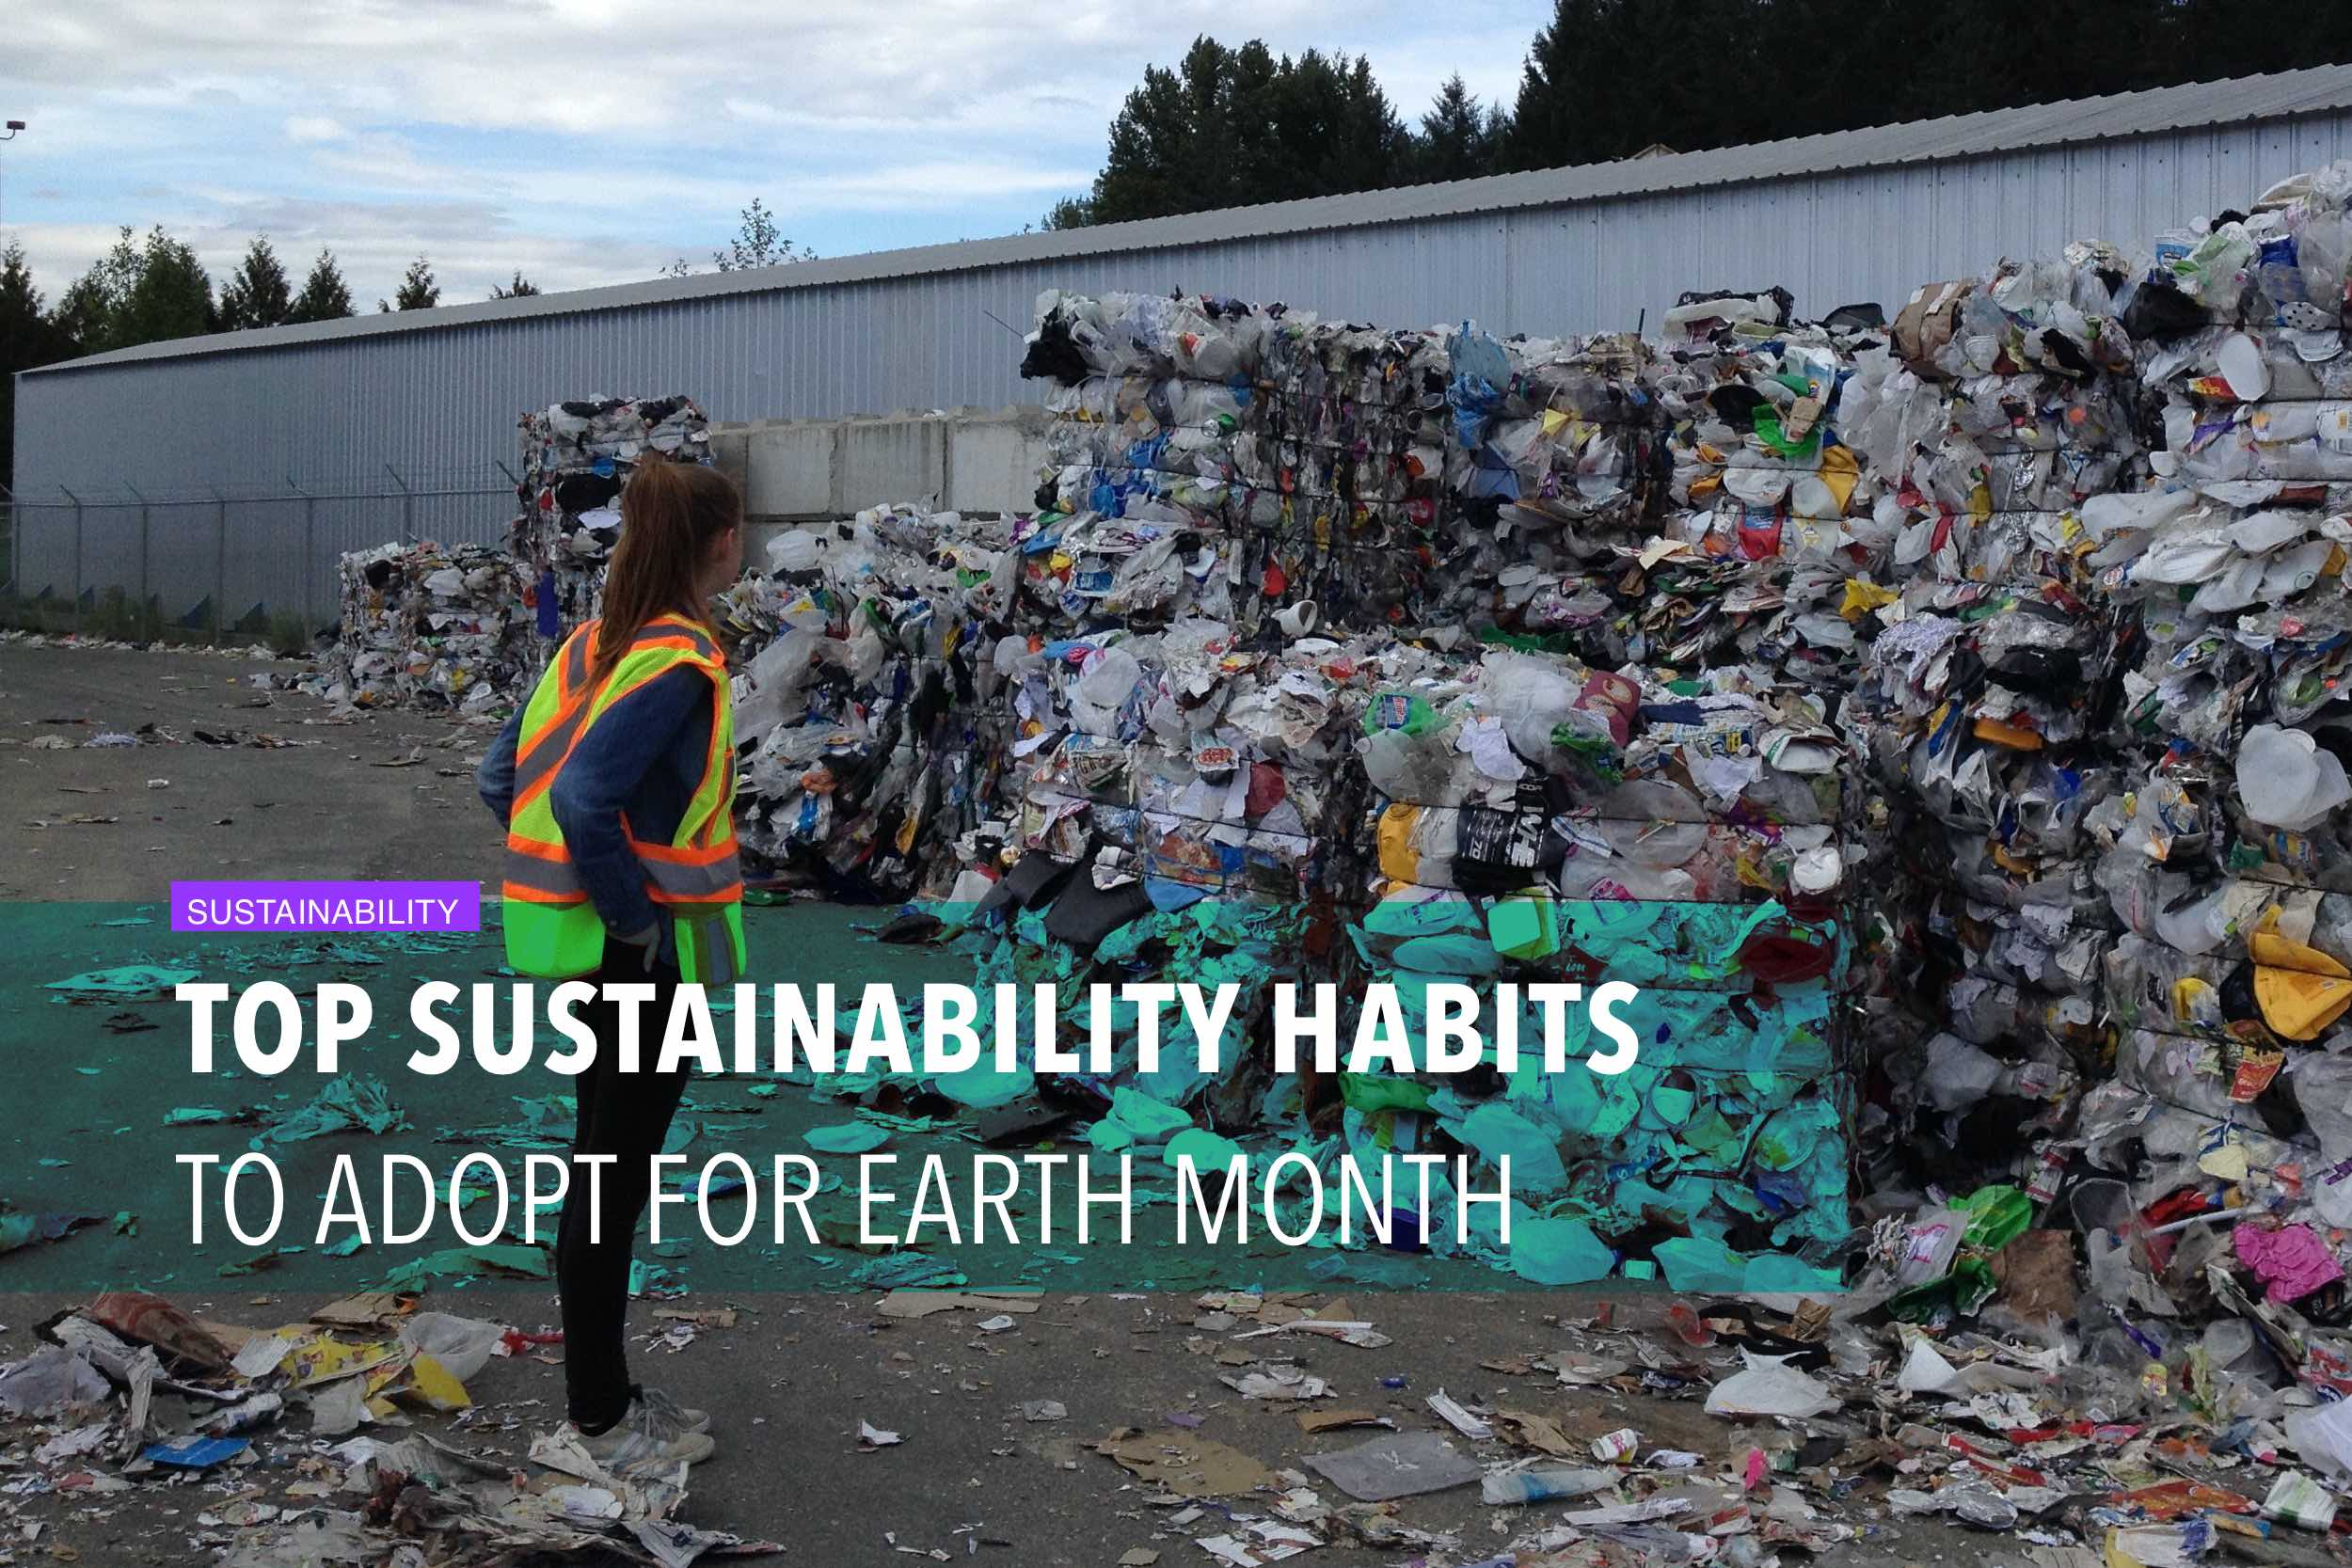 Top sustainability habits to adopt for Earth Month